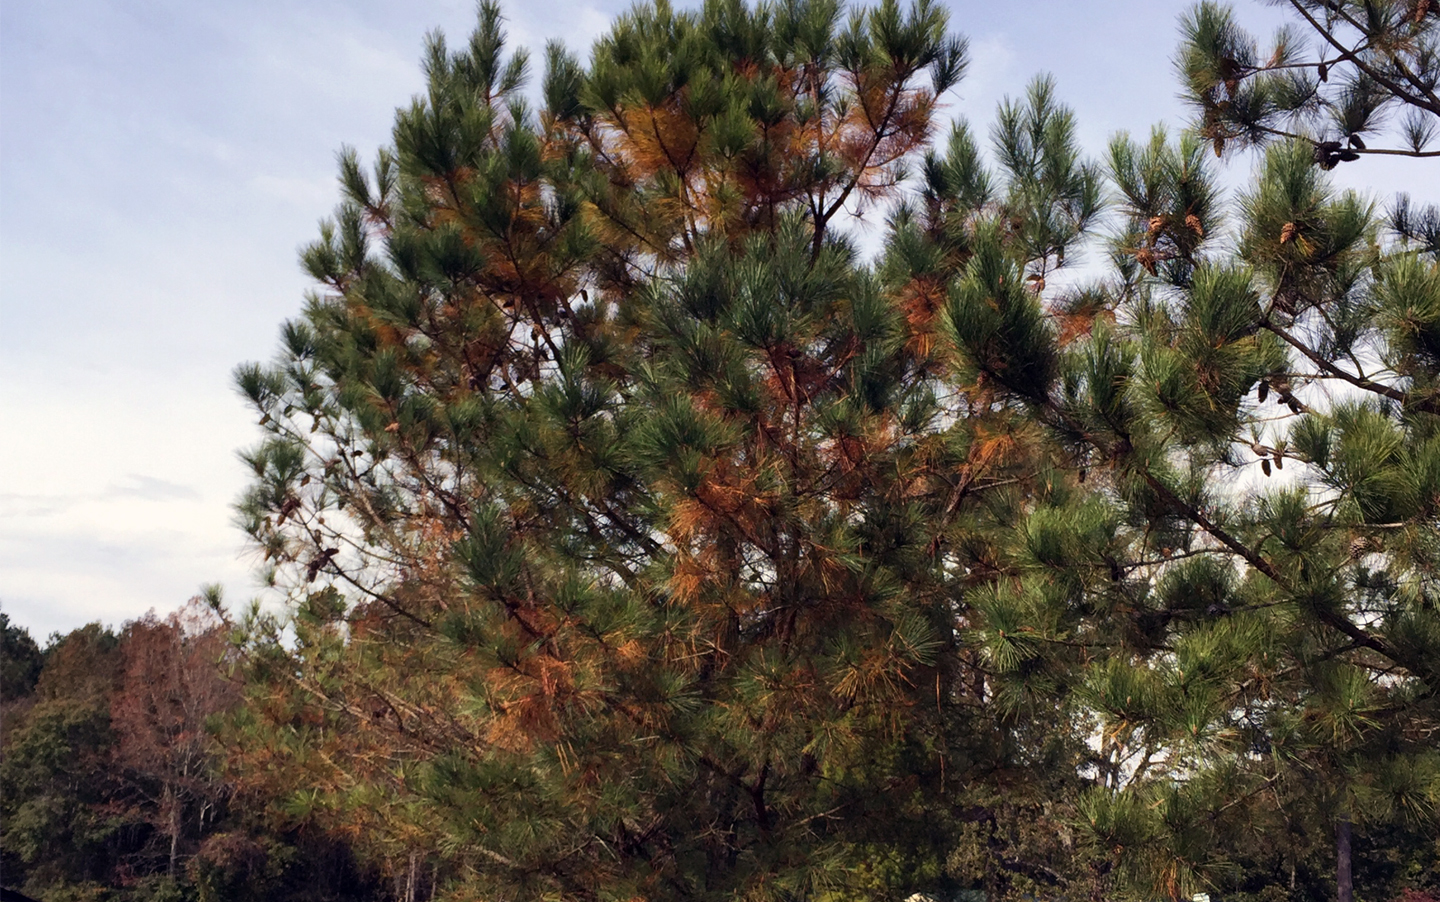 Photo of pine tree with brown needles about to fall